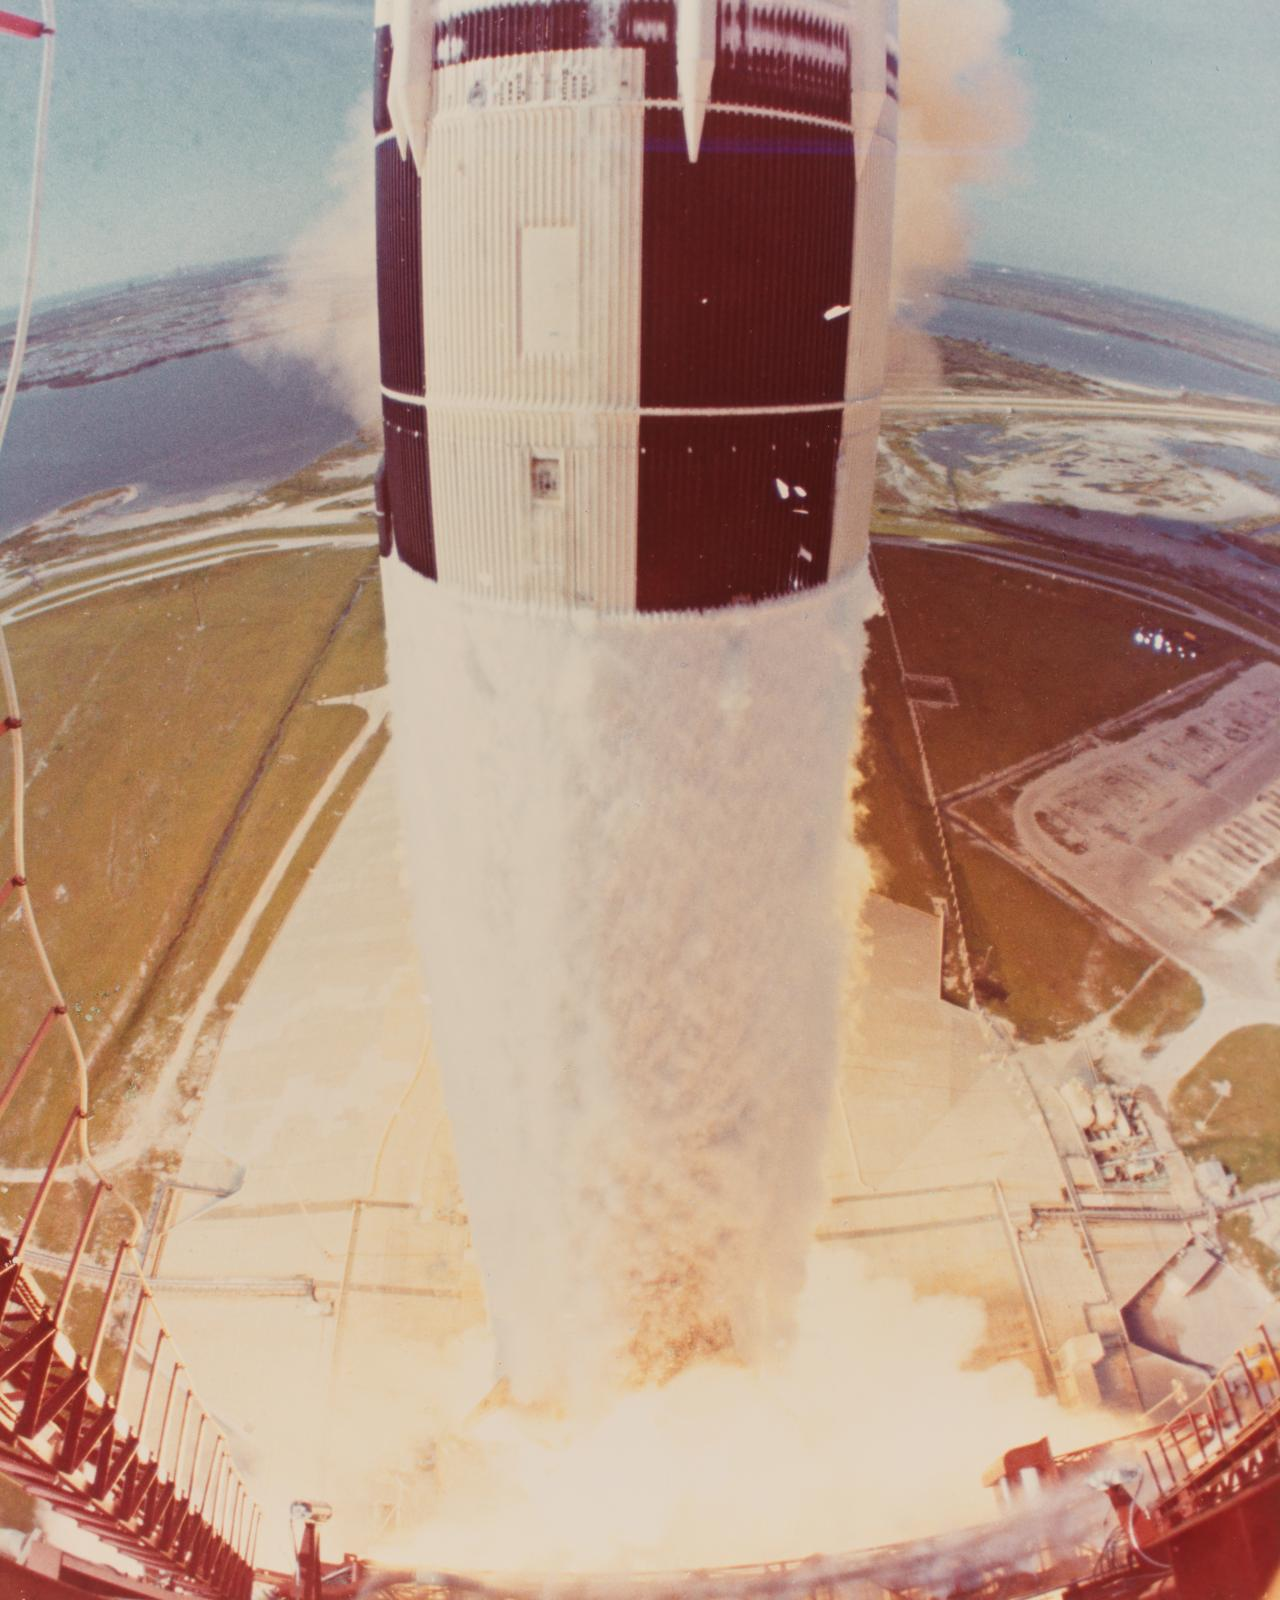 Apollo 15 lift-off viewed from 360 foot level of mobile launcher